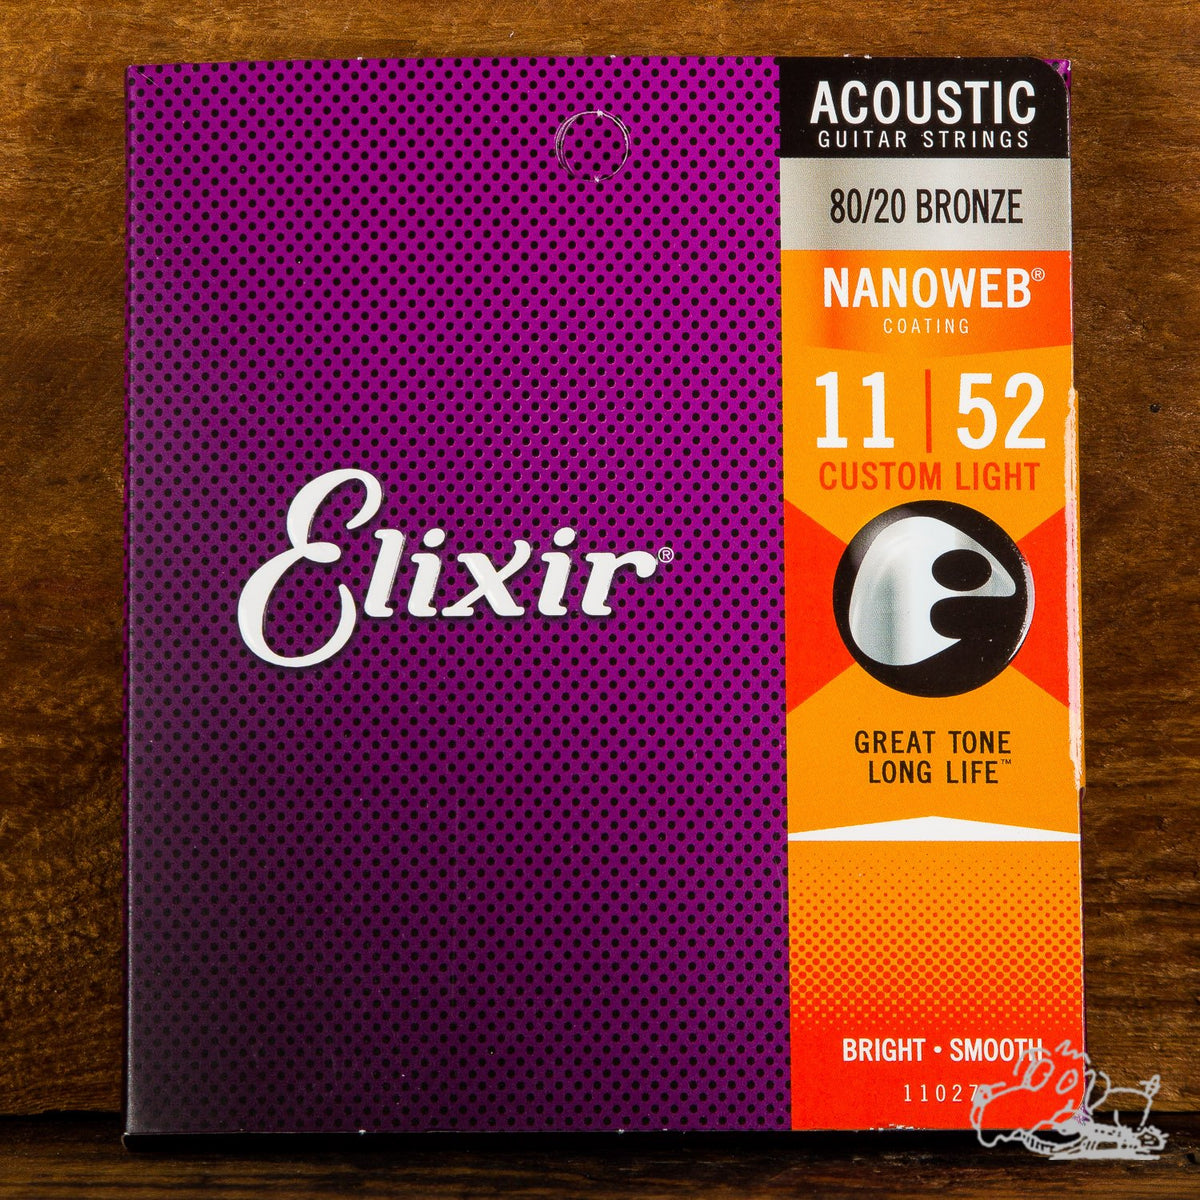 Elixir Nanoweb Coating Acoustic Guitar Strings 80/20 Bronze Custom Light 11-52